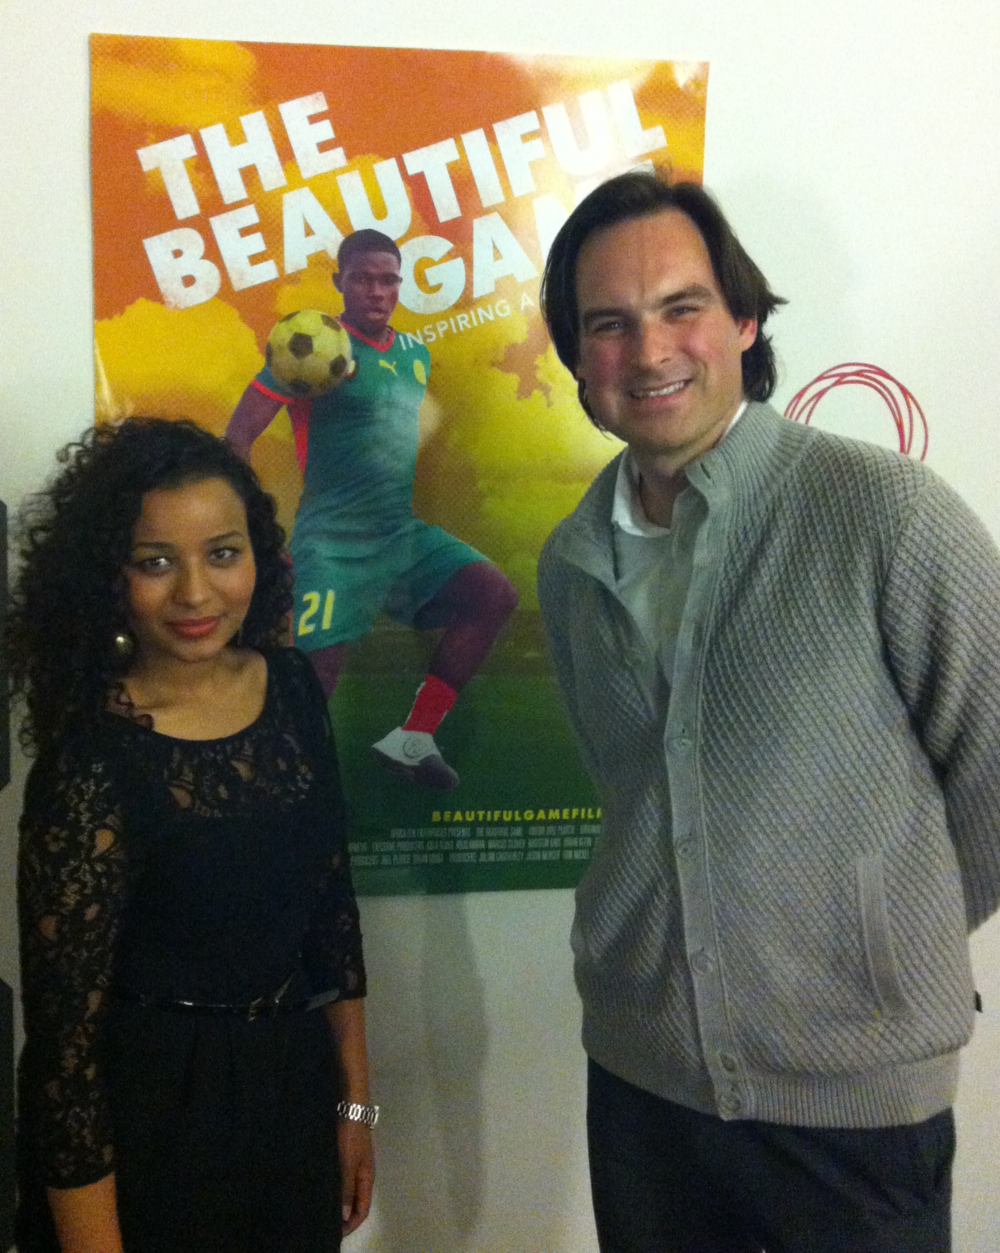 Cheesy posing with Beautiful Game director Victor Buhler